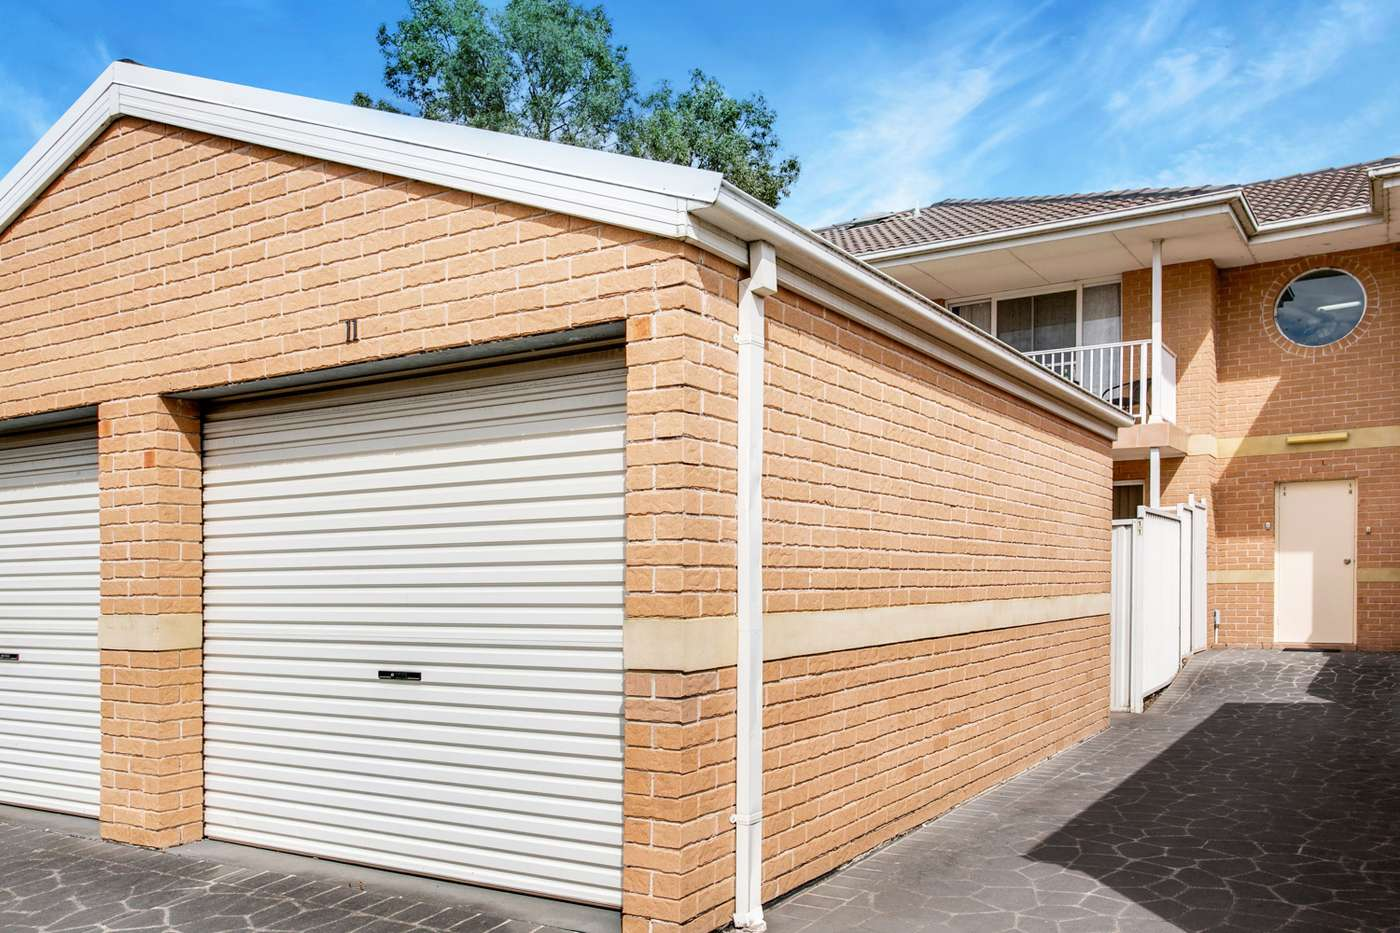 Main view of Homely villa listing, 11/1-11 George Street, St Marys, NSW 2760